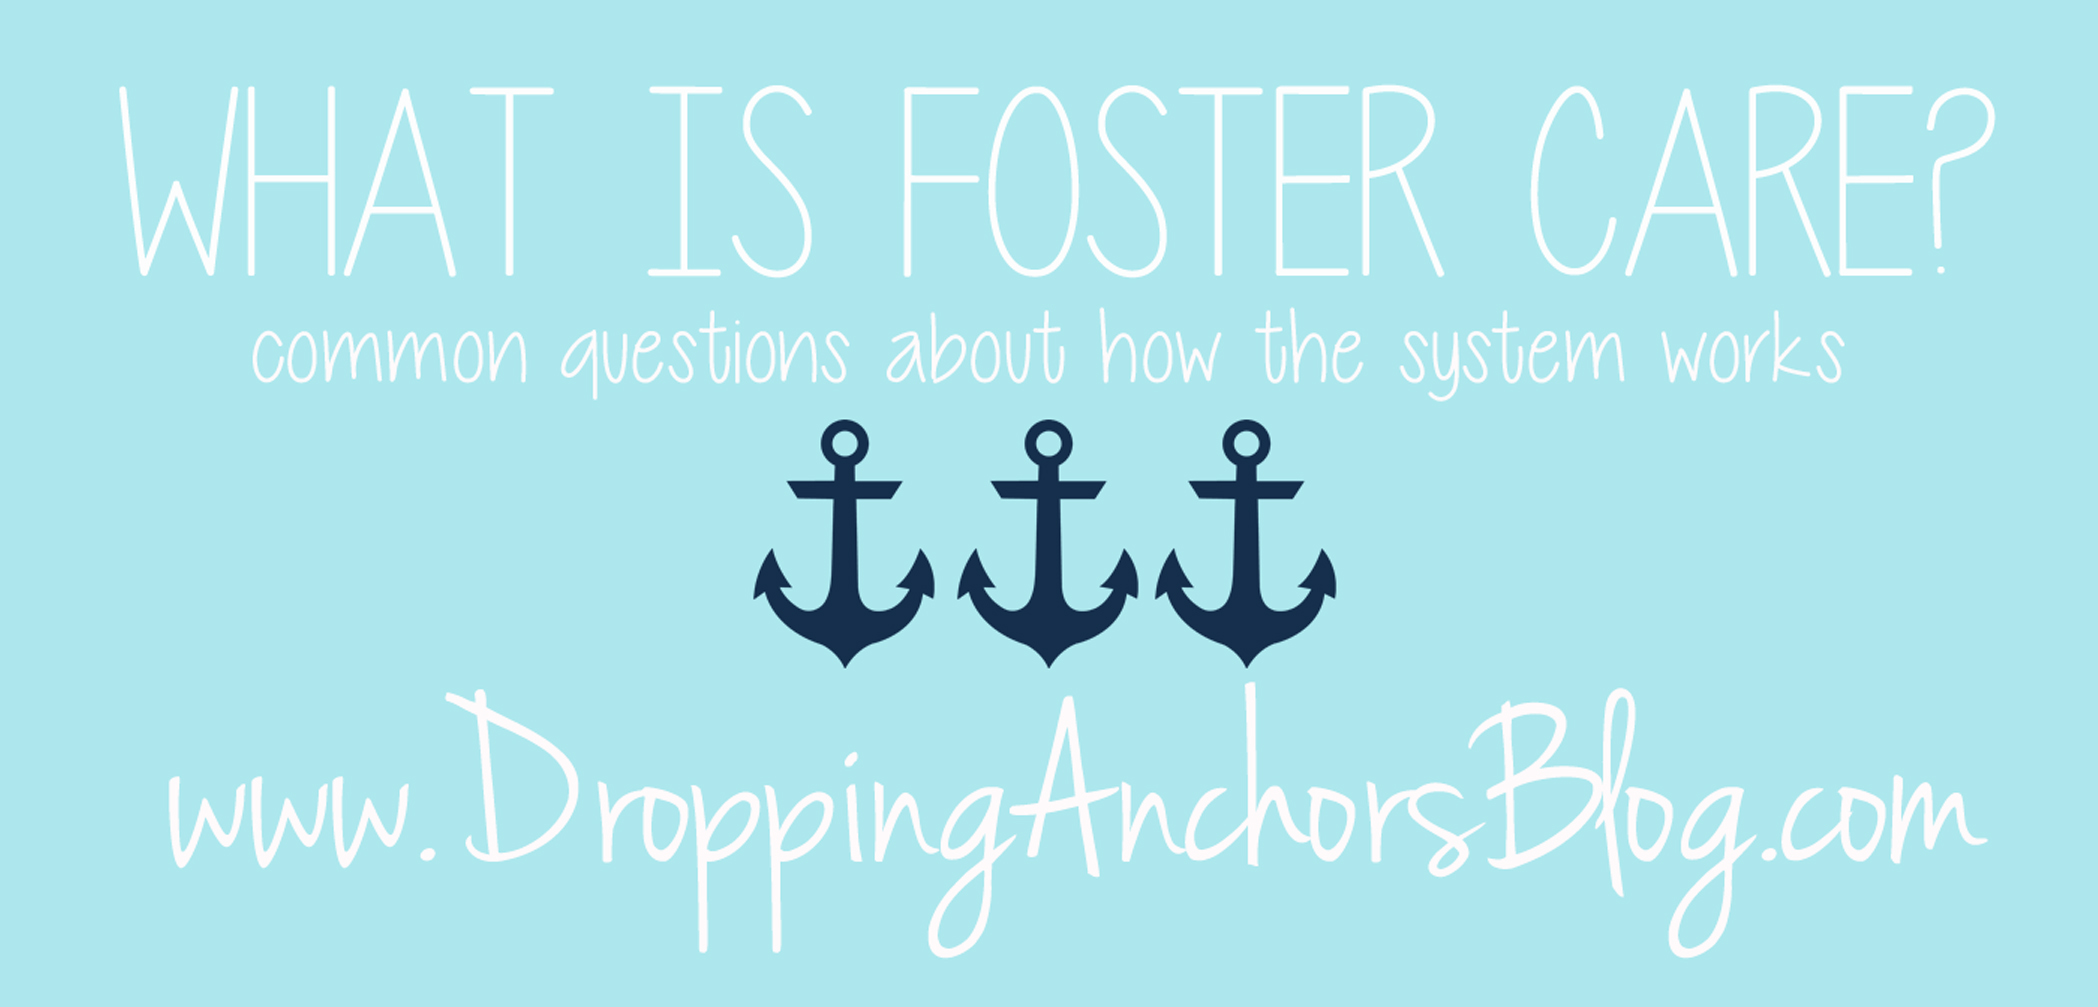 Number Of Kids In Foster Care